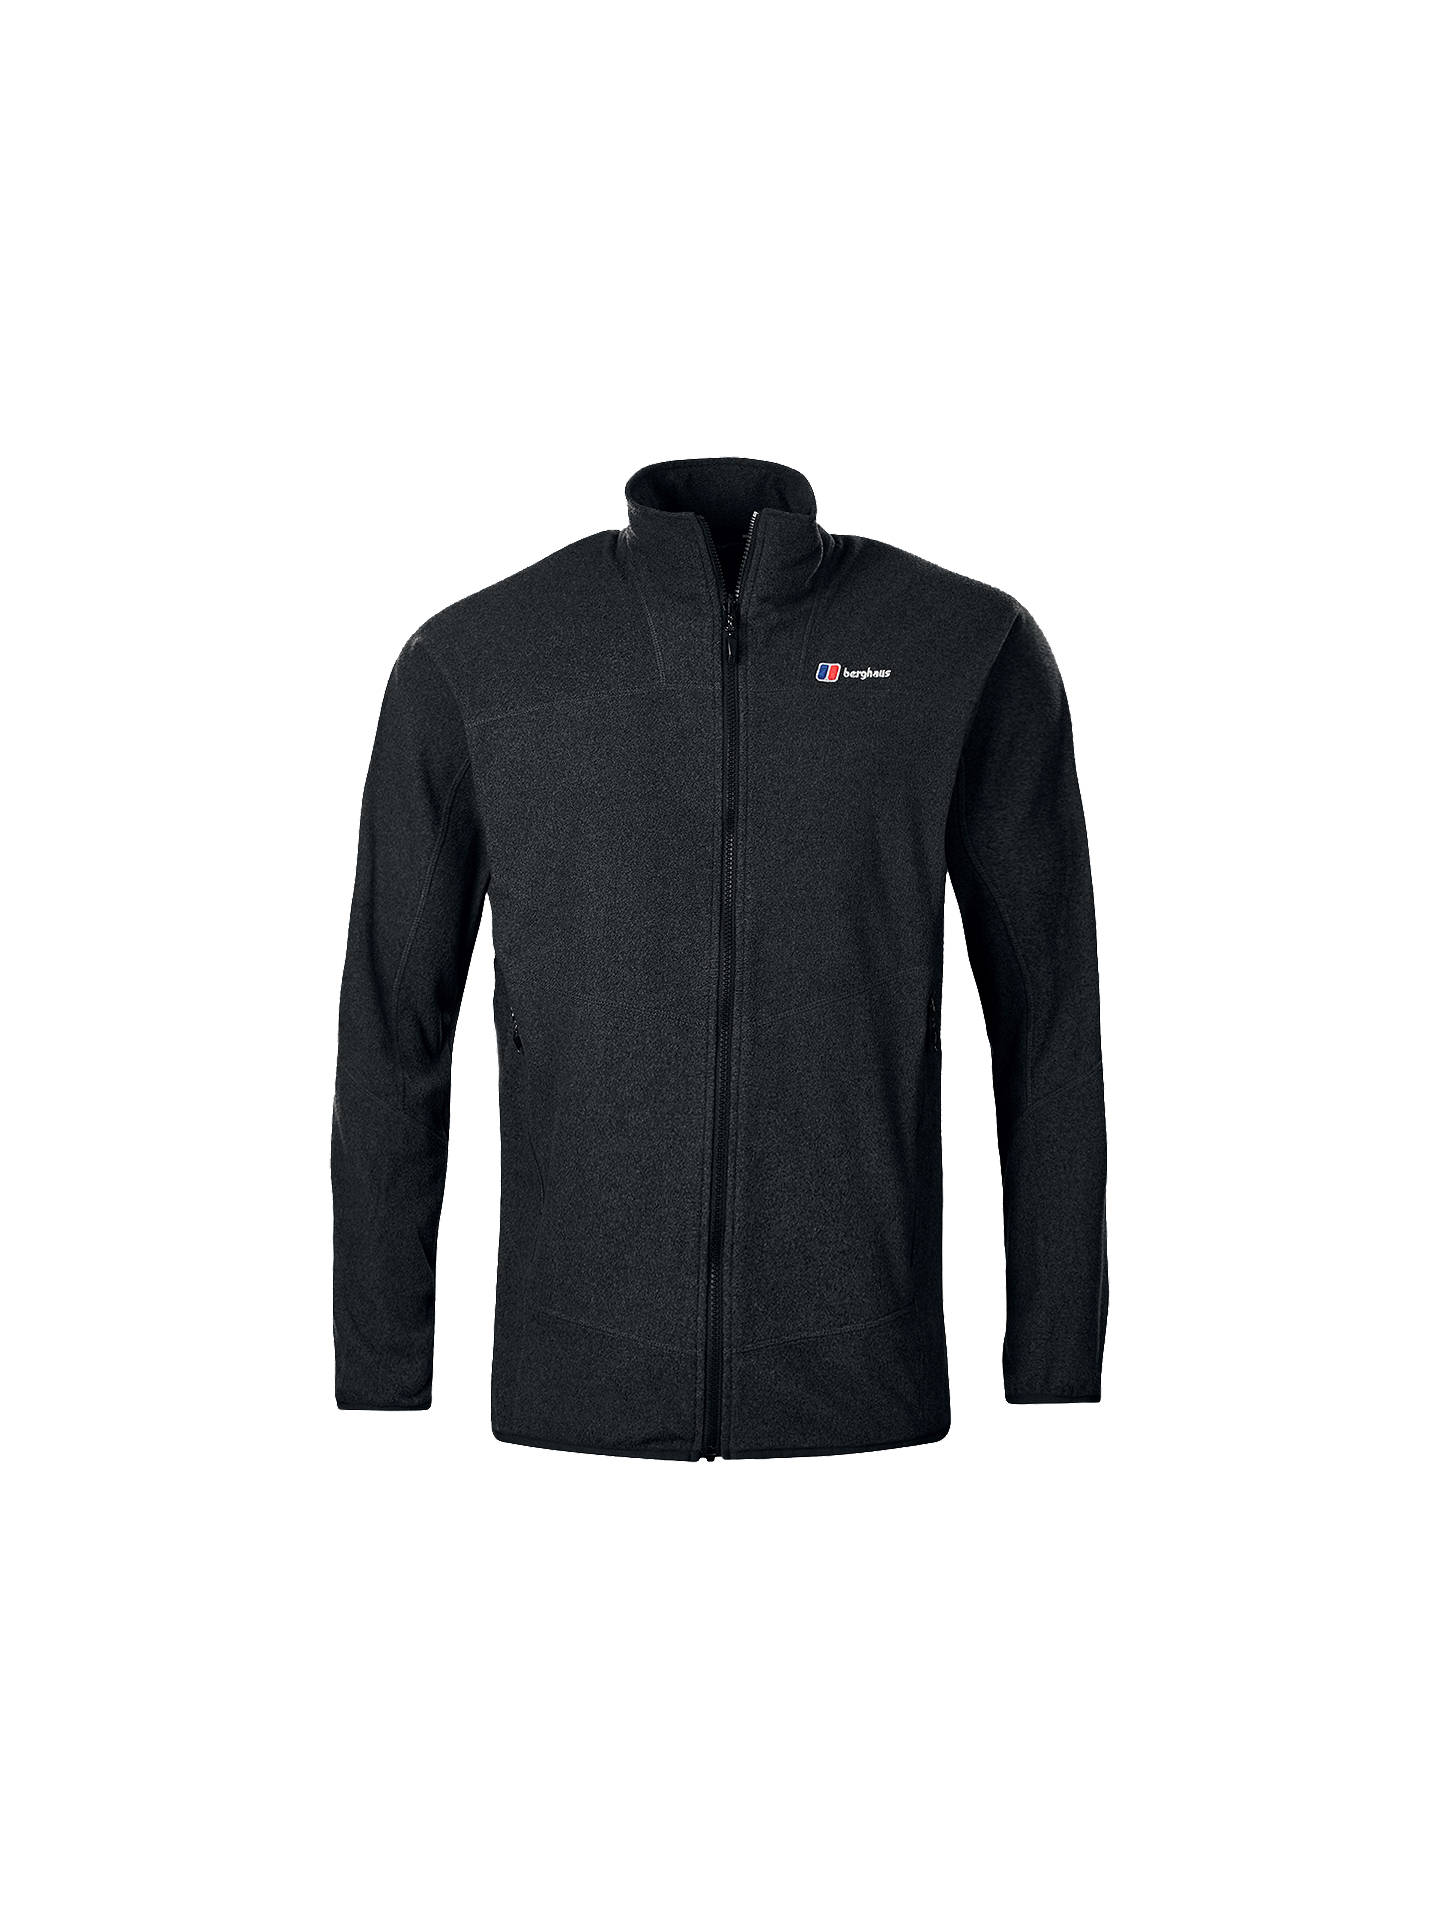 BuyBerghaus Spectrum Full Zip Men's Fleece, Jet Black Marl, S Online at johnlewis.com